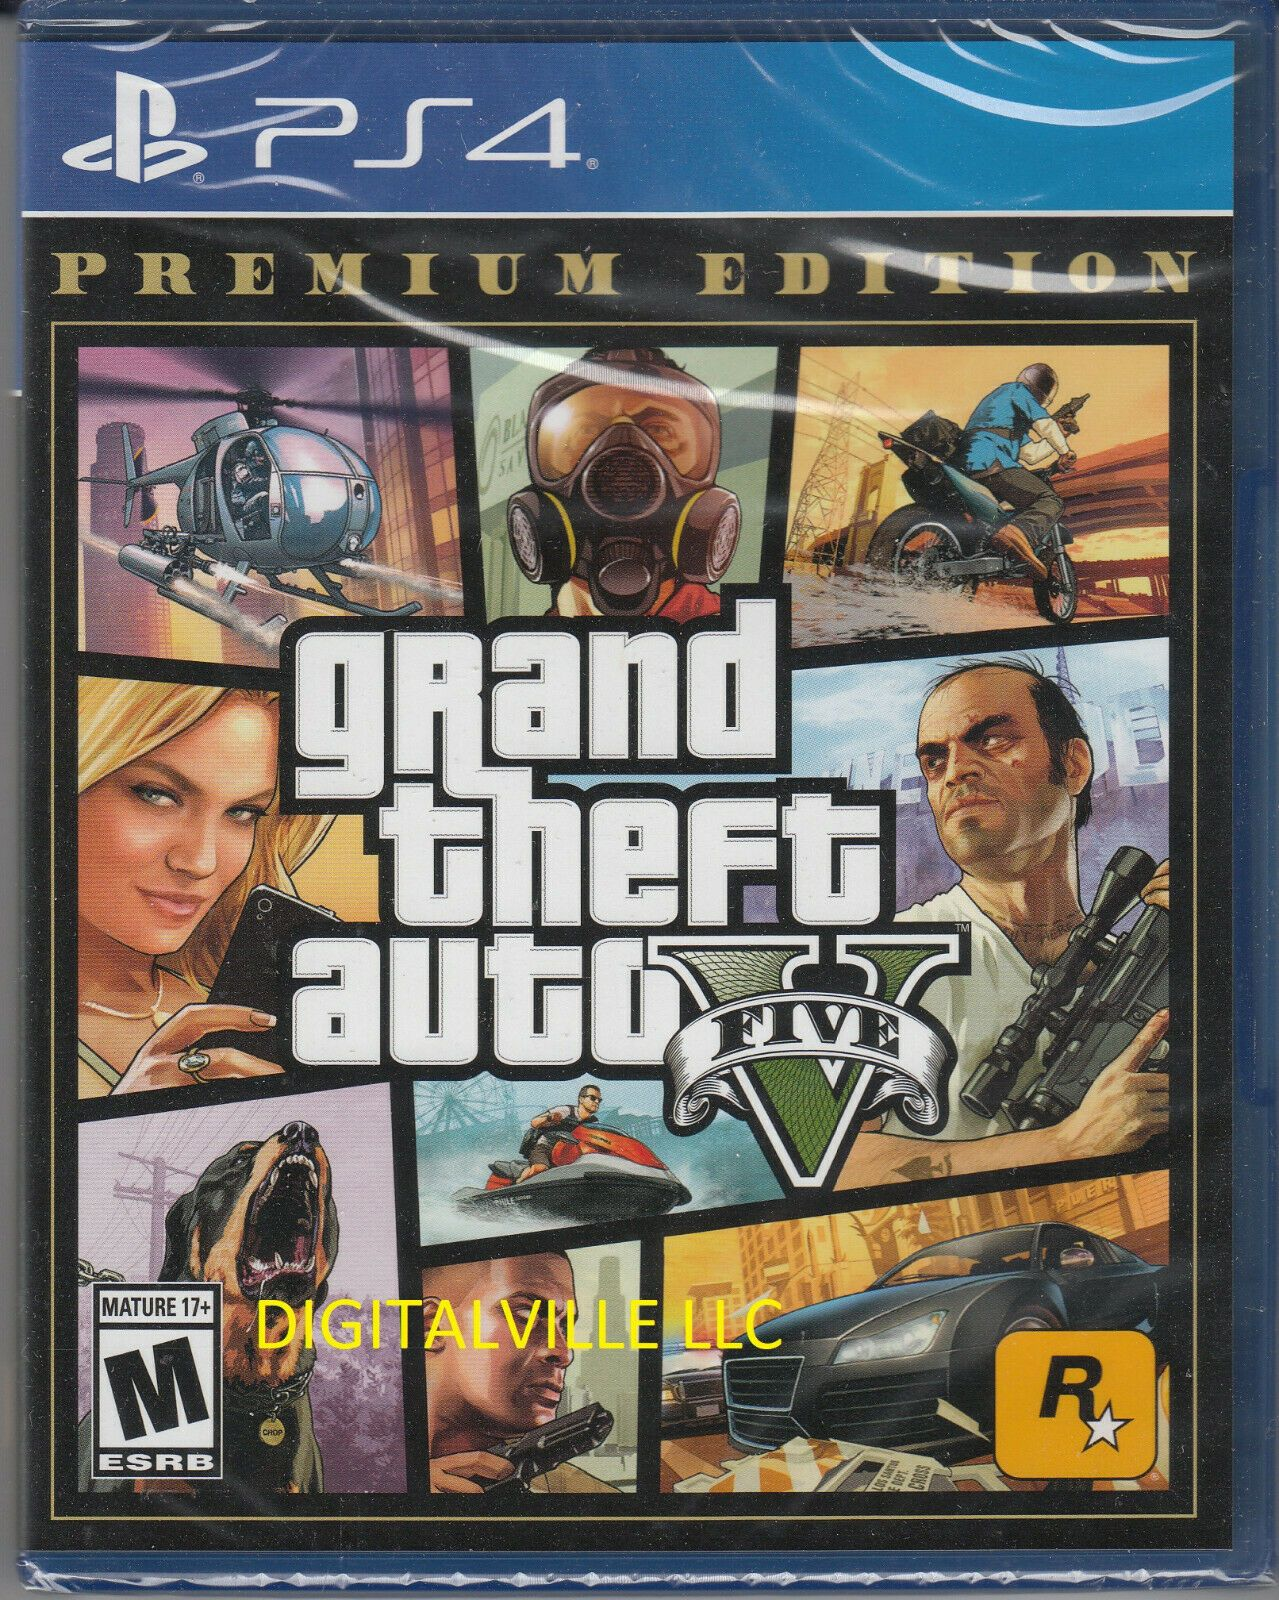 Grand Theft Auto V Premium Edition Ps4 Brand New Factory Sealed Gta 5 710425570322 Ebay In 2020 Grand Theft Auto Video Game Stores Super Mario Bros Games